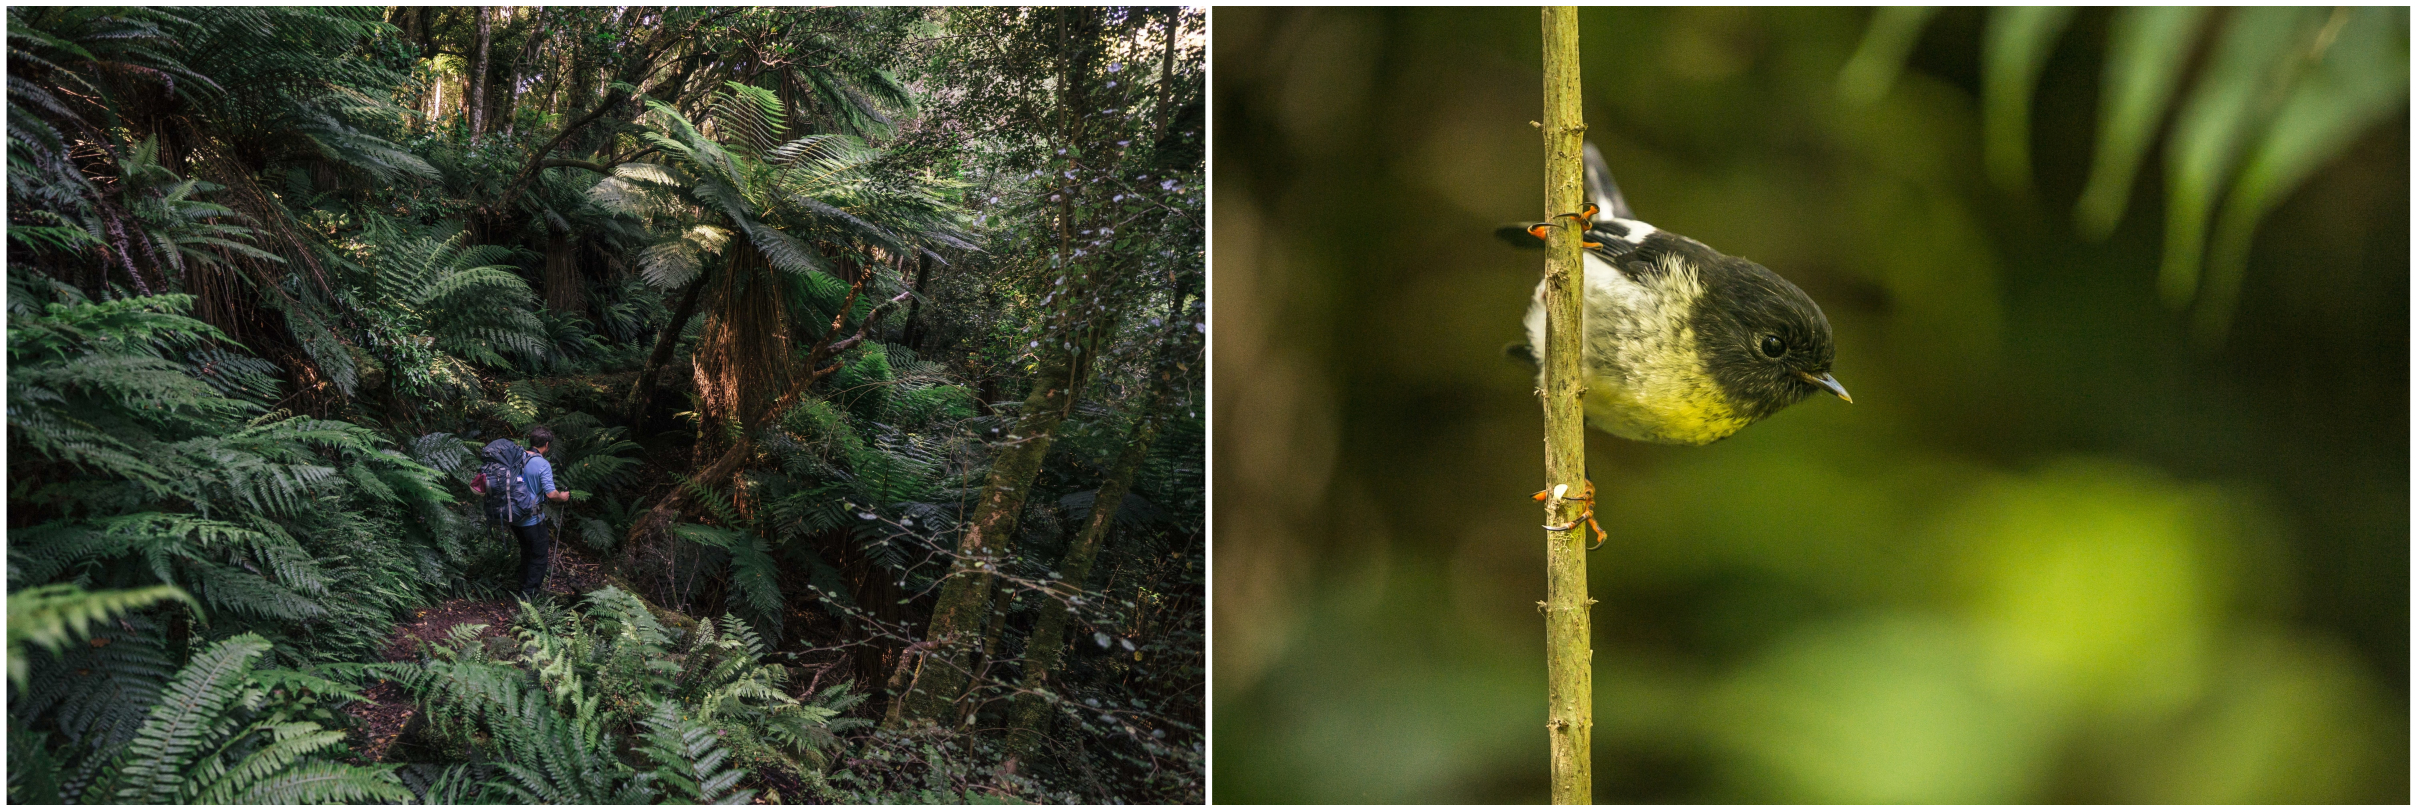 "- Top left: A juvenile tomtit greeting us in the forests above Bluff. Top right: The dense, dark woods of the Longwood Forest Conservation Area. Bottom left: Trees make way to patches of ferns along the Longwood Forest Track. There are approximatley 200 species of ferns in New Zealand, with the most iconic being the silver tree-fern. Bottom right: A male tomtit, known by its Māori name as ""miromiro"". They are mostly forest and brush dwellers, seldom seen in open-country farmland."